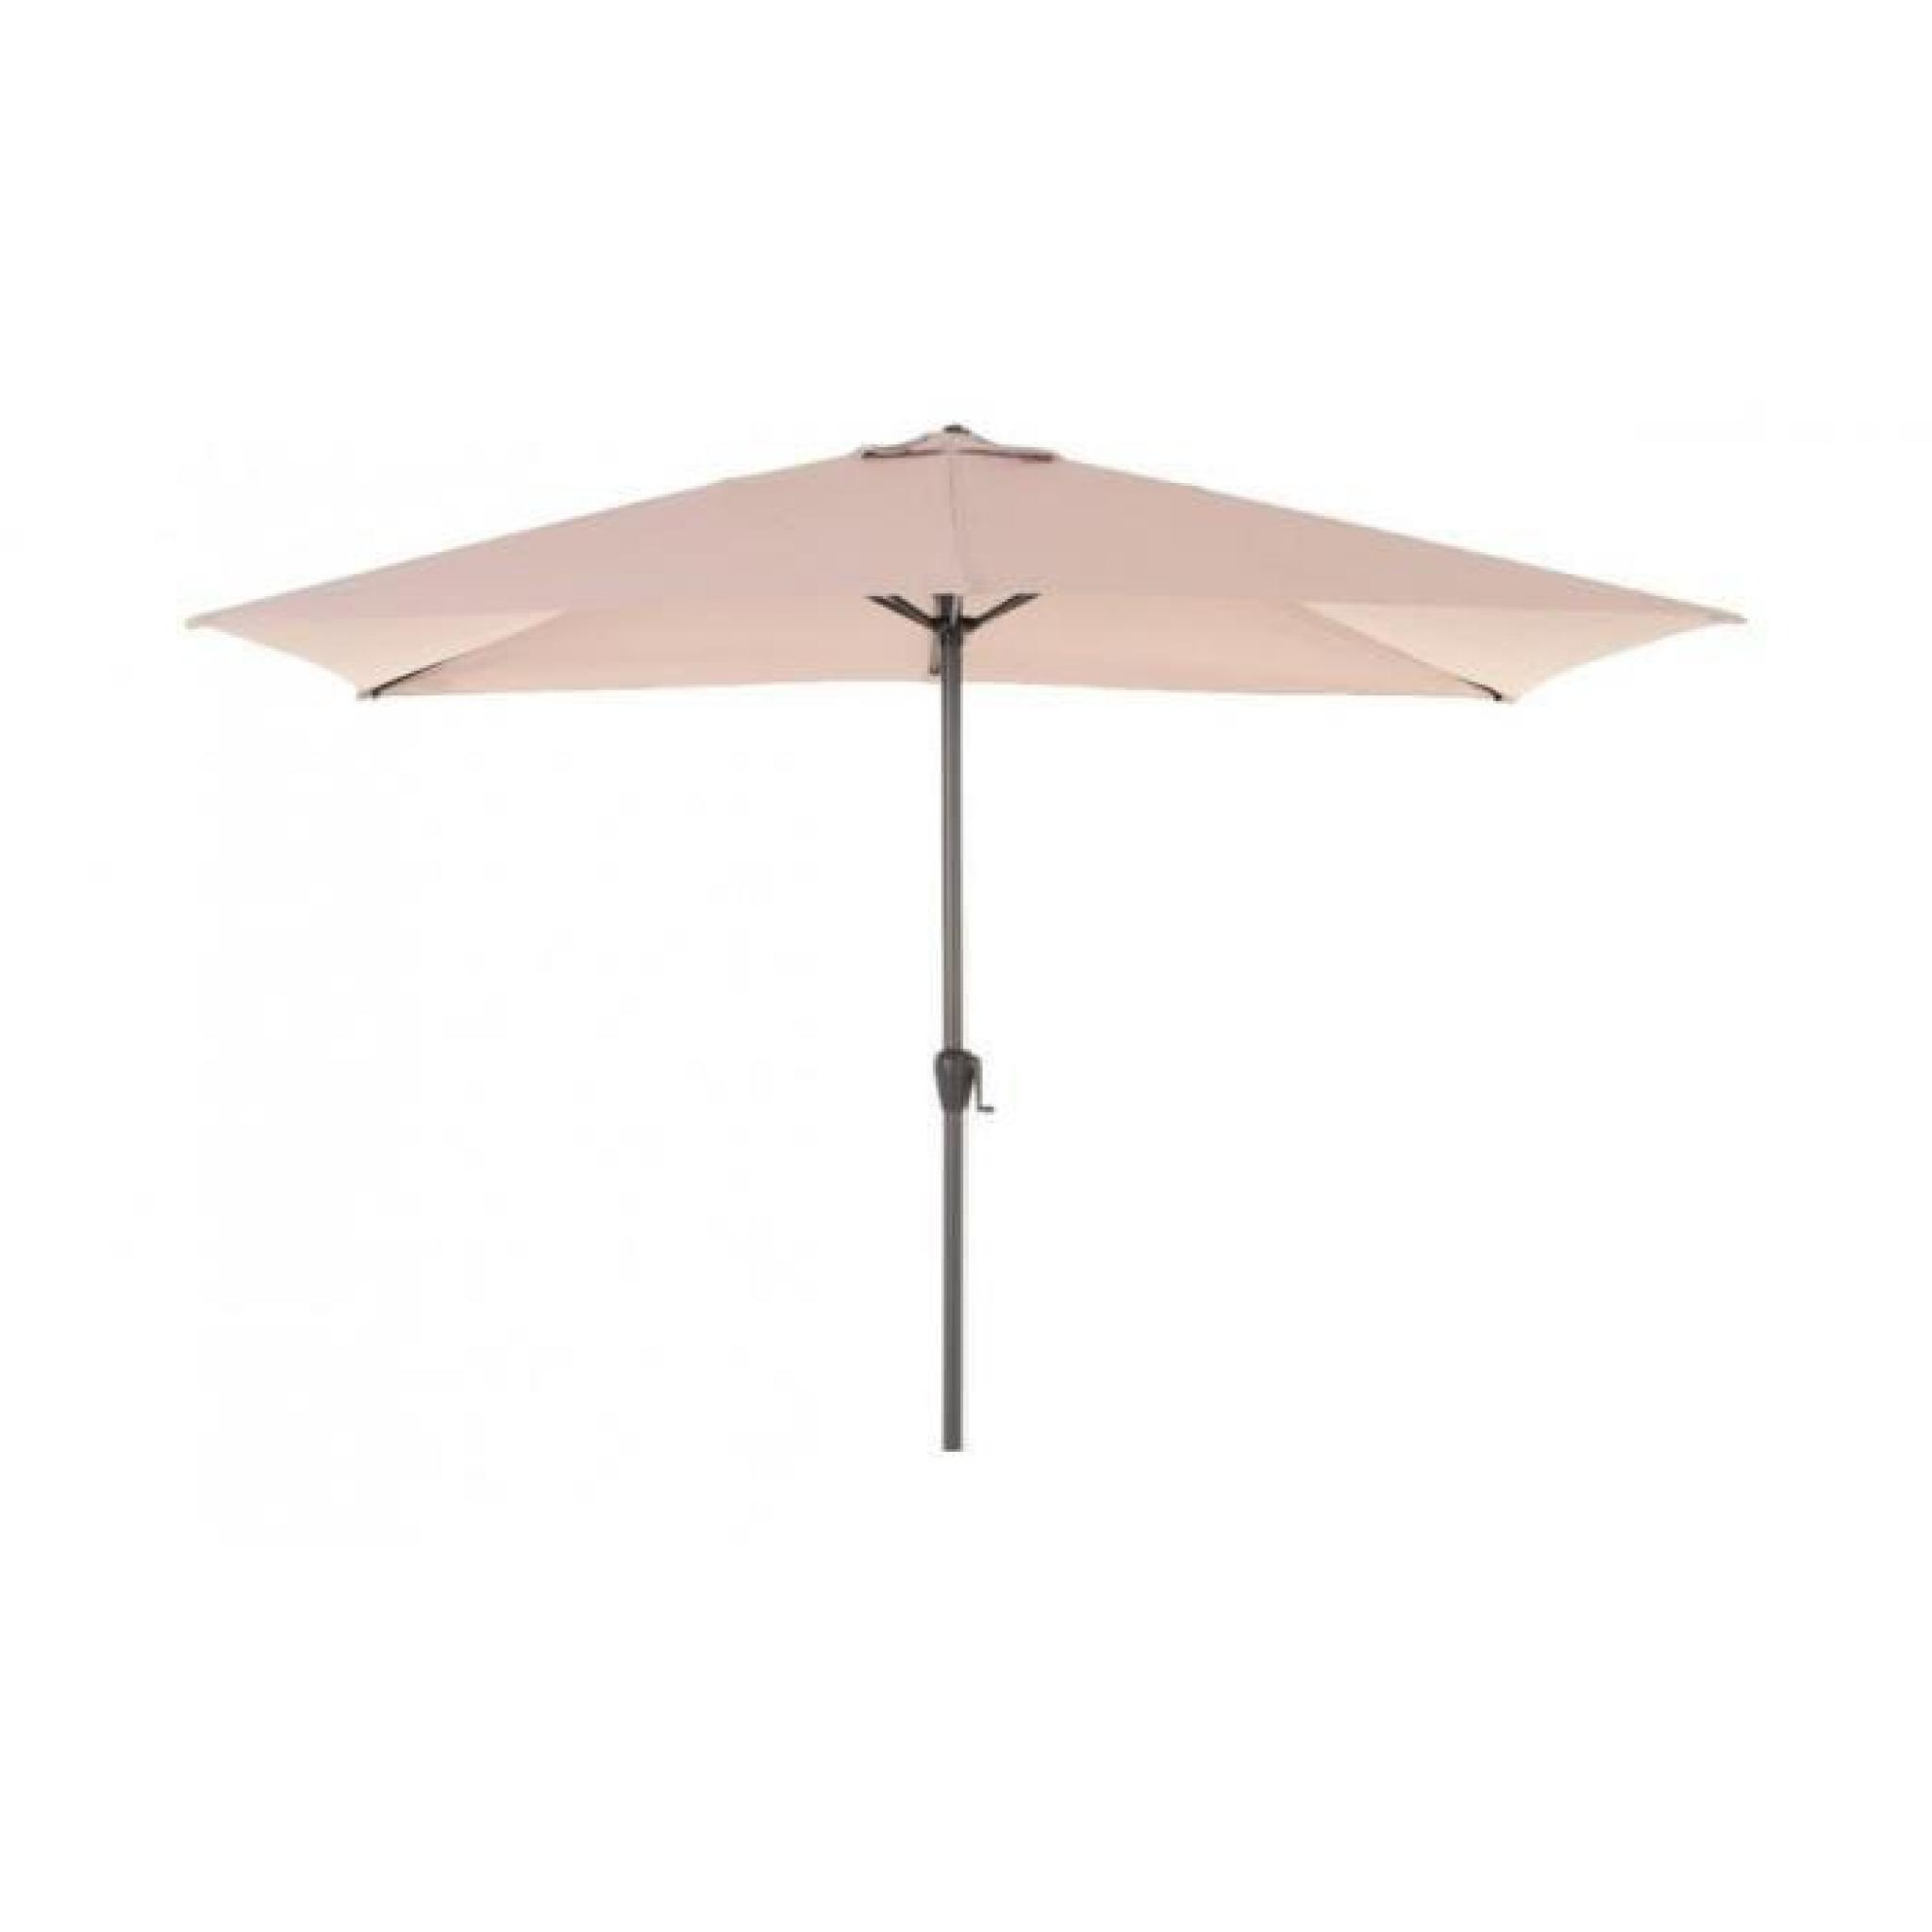 parasol fidji rect 2x3m hesperide taupe achat vente. Black Bedroom Furniture Sets. Home Design Ideas